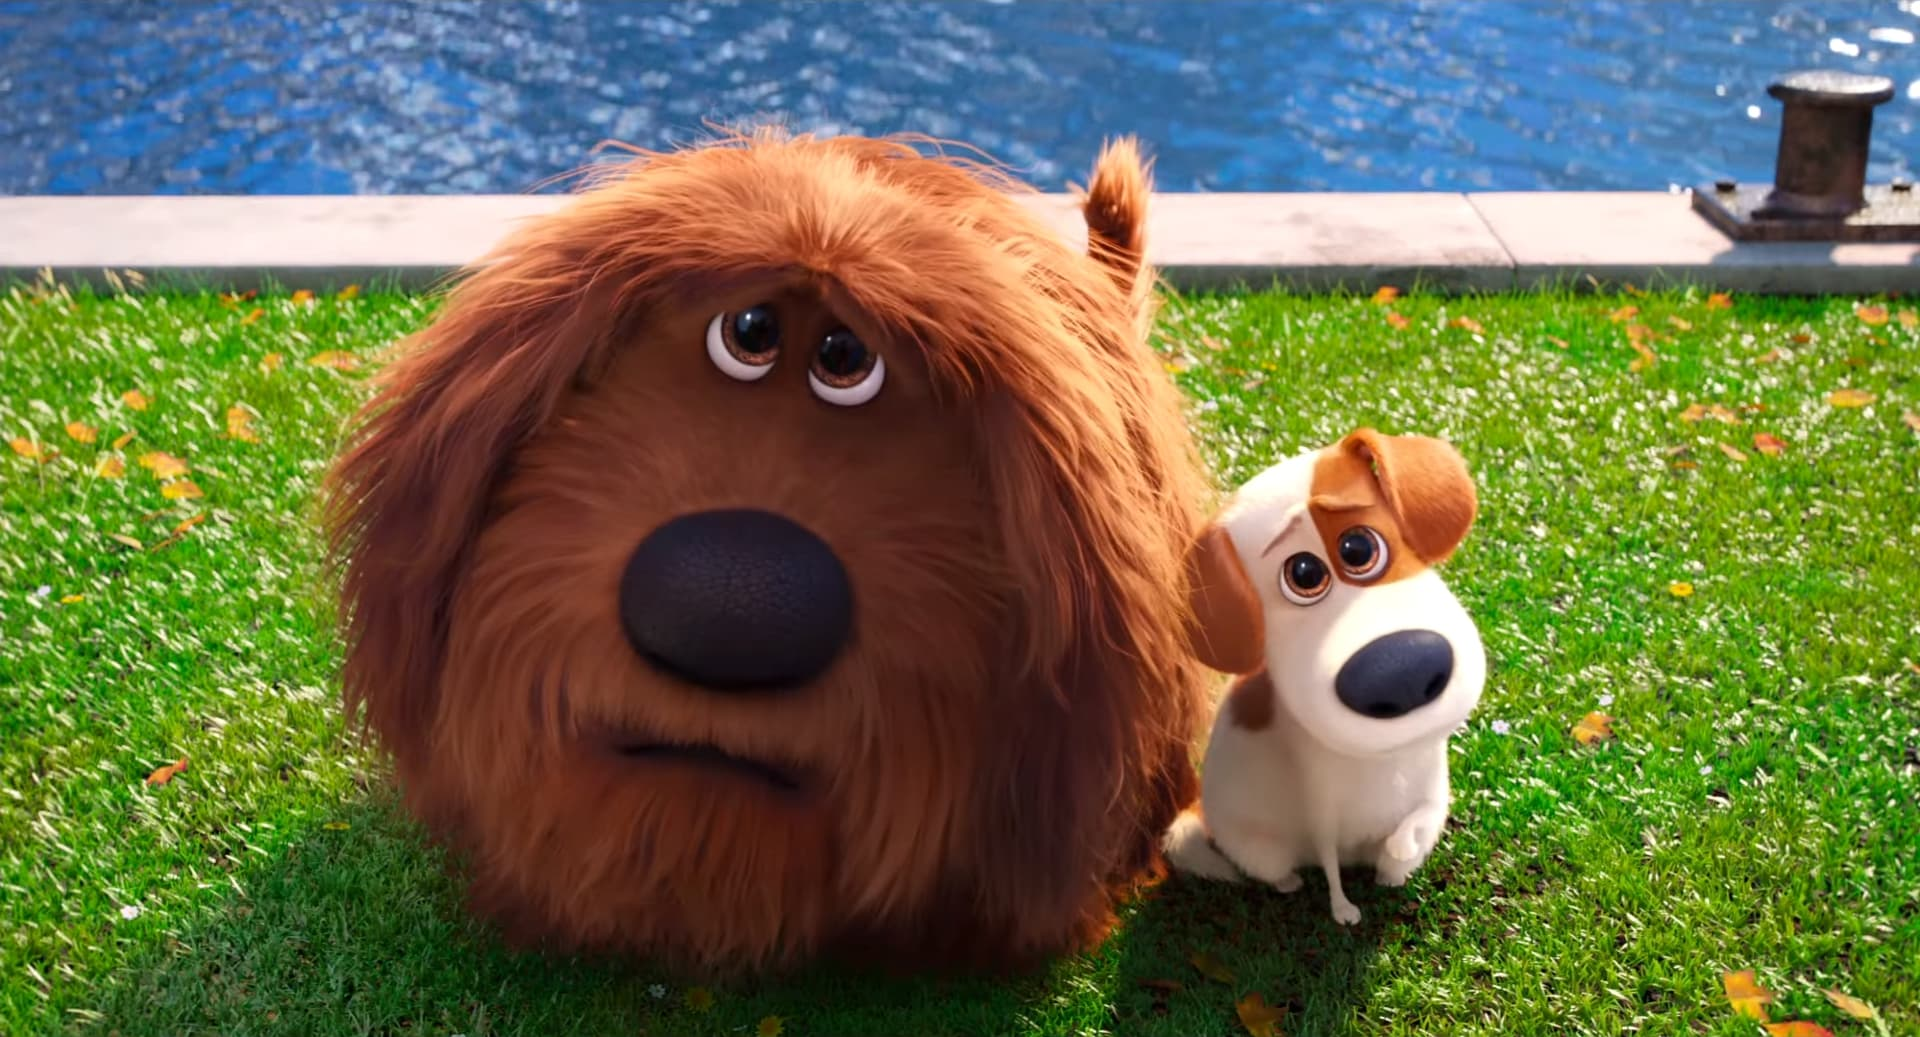 The Secret Life Of Pets Wallpaper: The Secret Life Of Pets Wallpapers